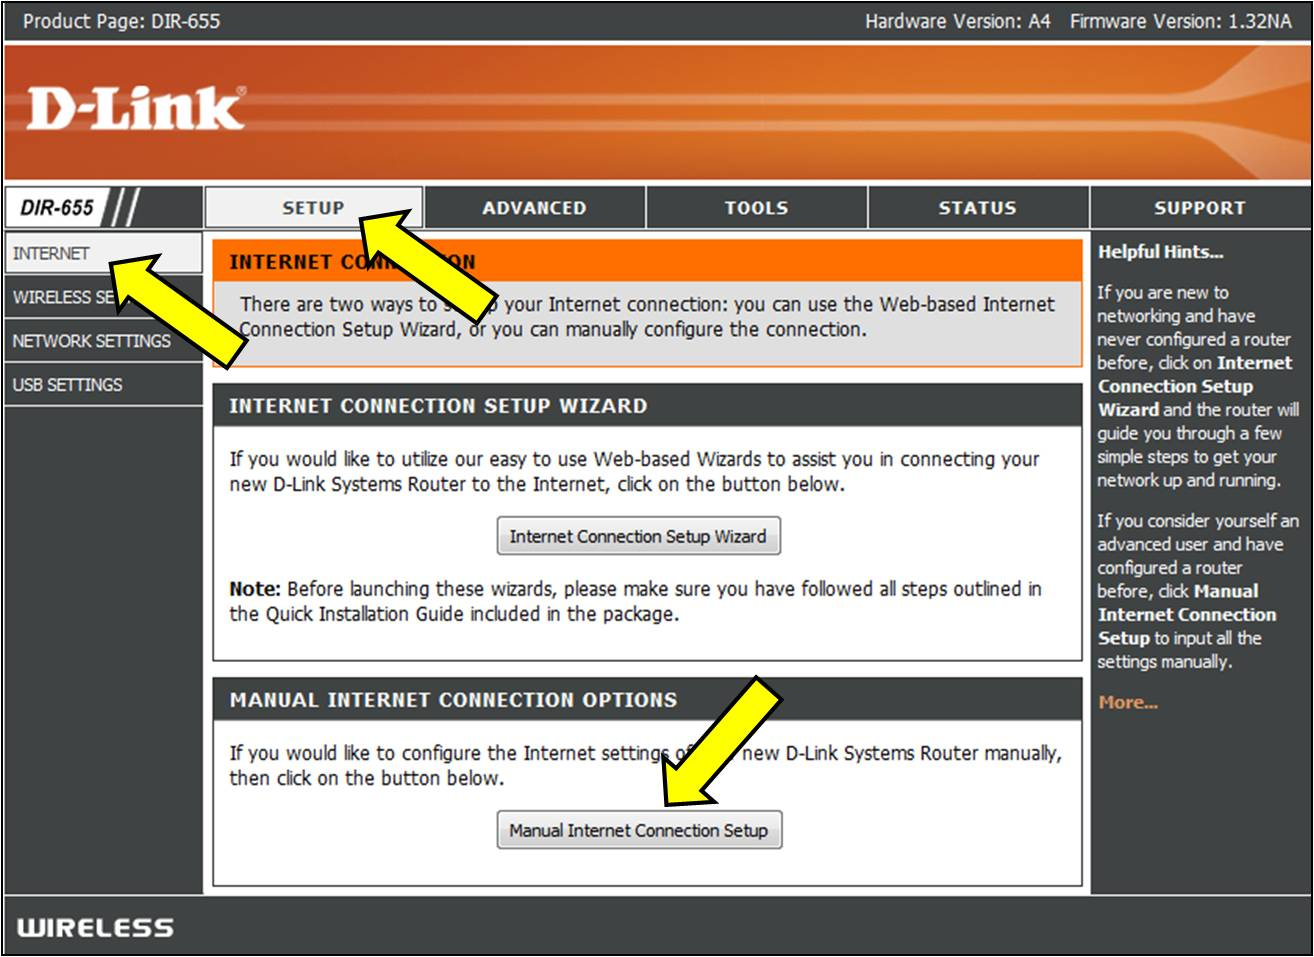 Step 3: Click on Manual Internet Connection Setup at the bottom of the page